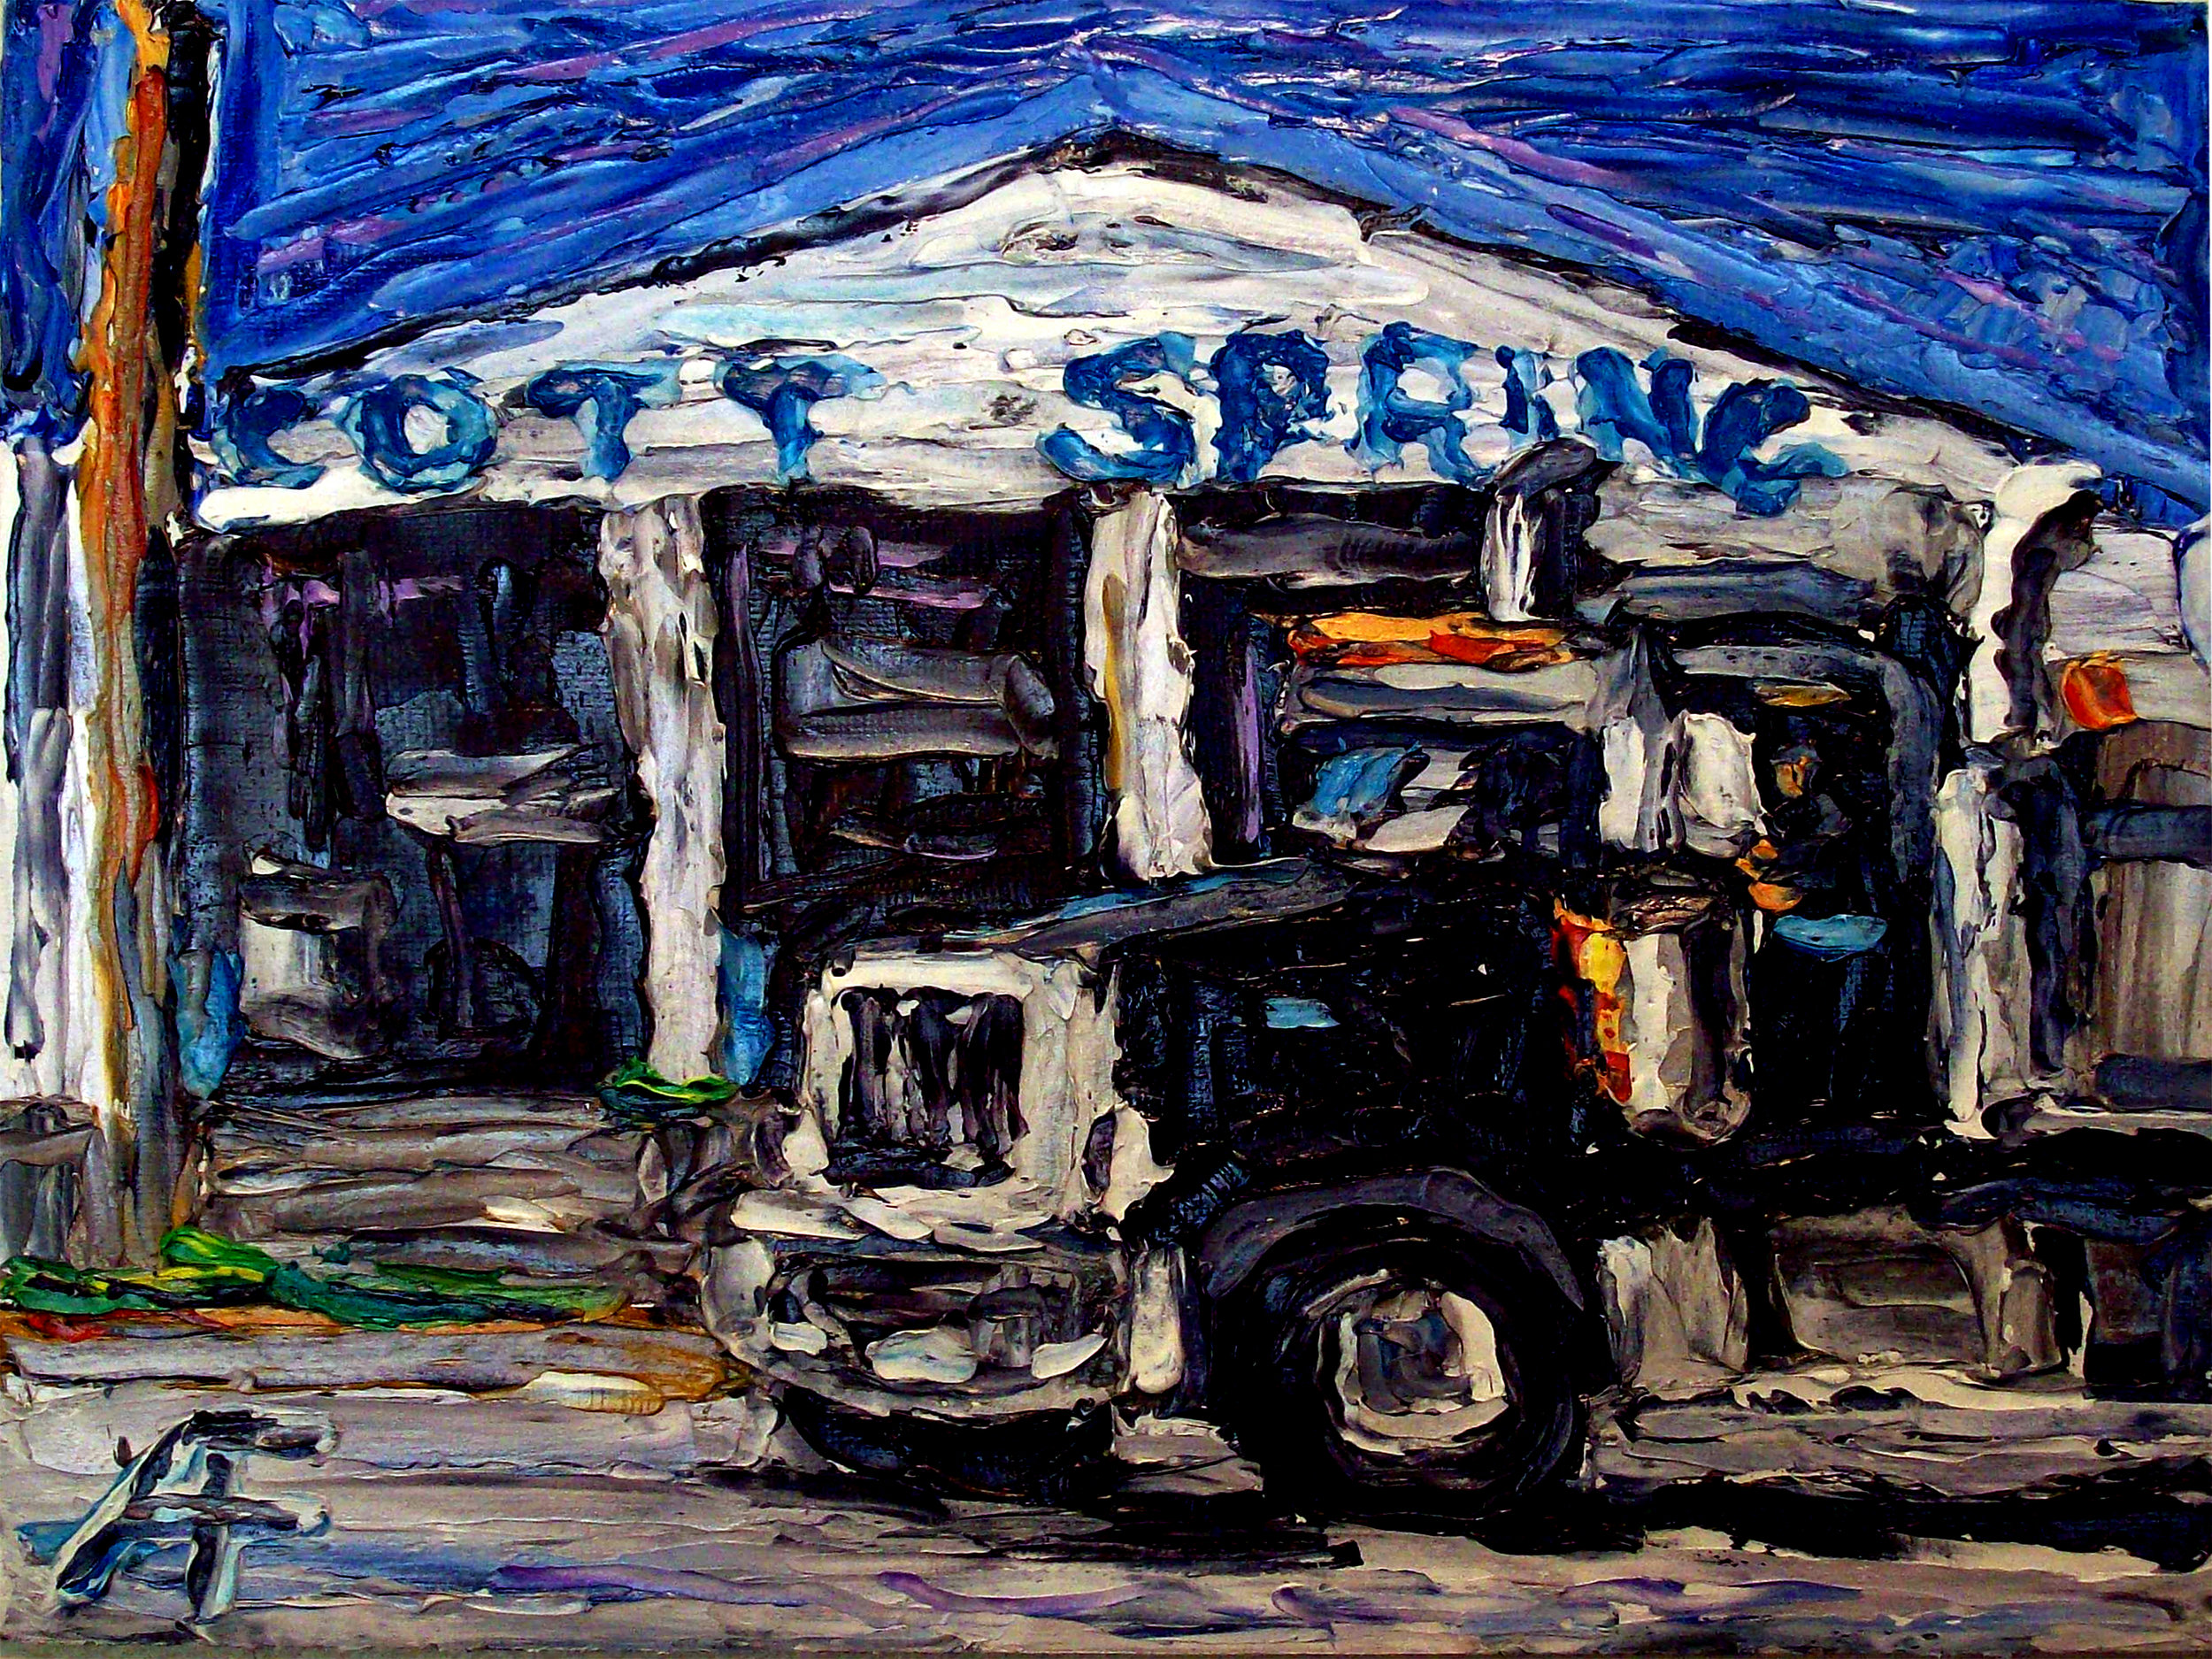 surrey_bc_industry_truck_oil_on_canvas_panel_8x10_2014